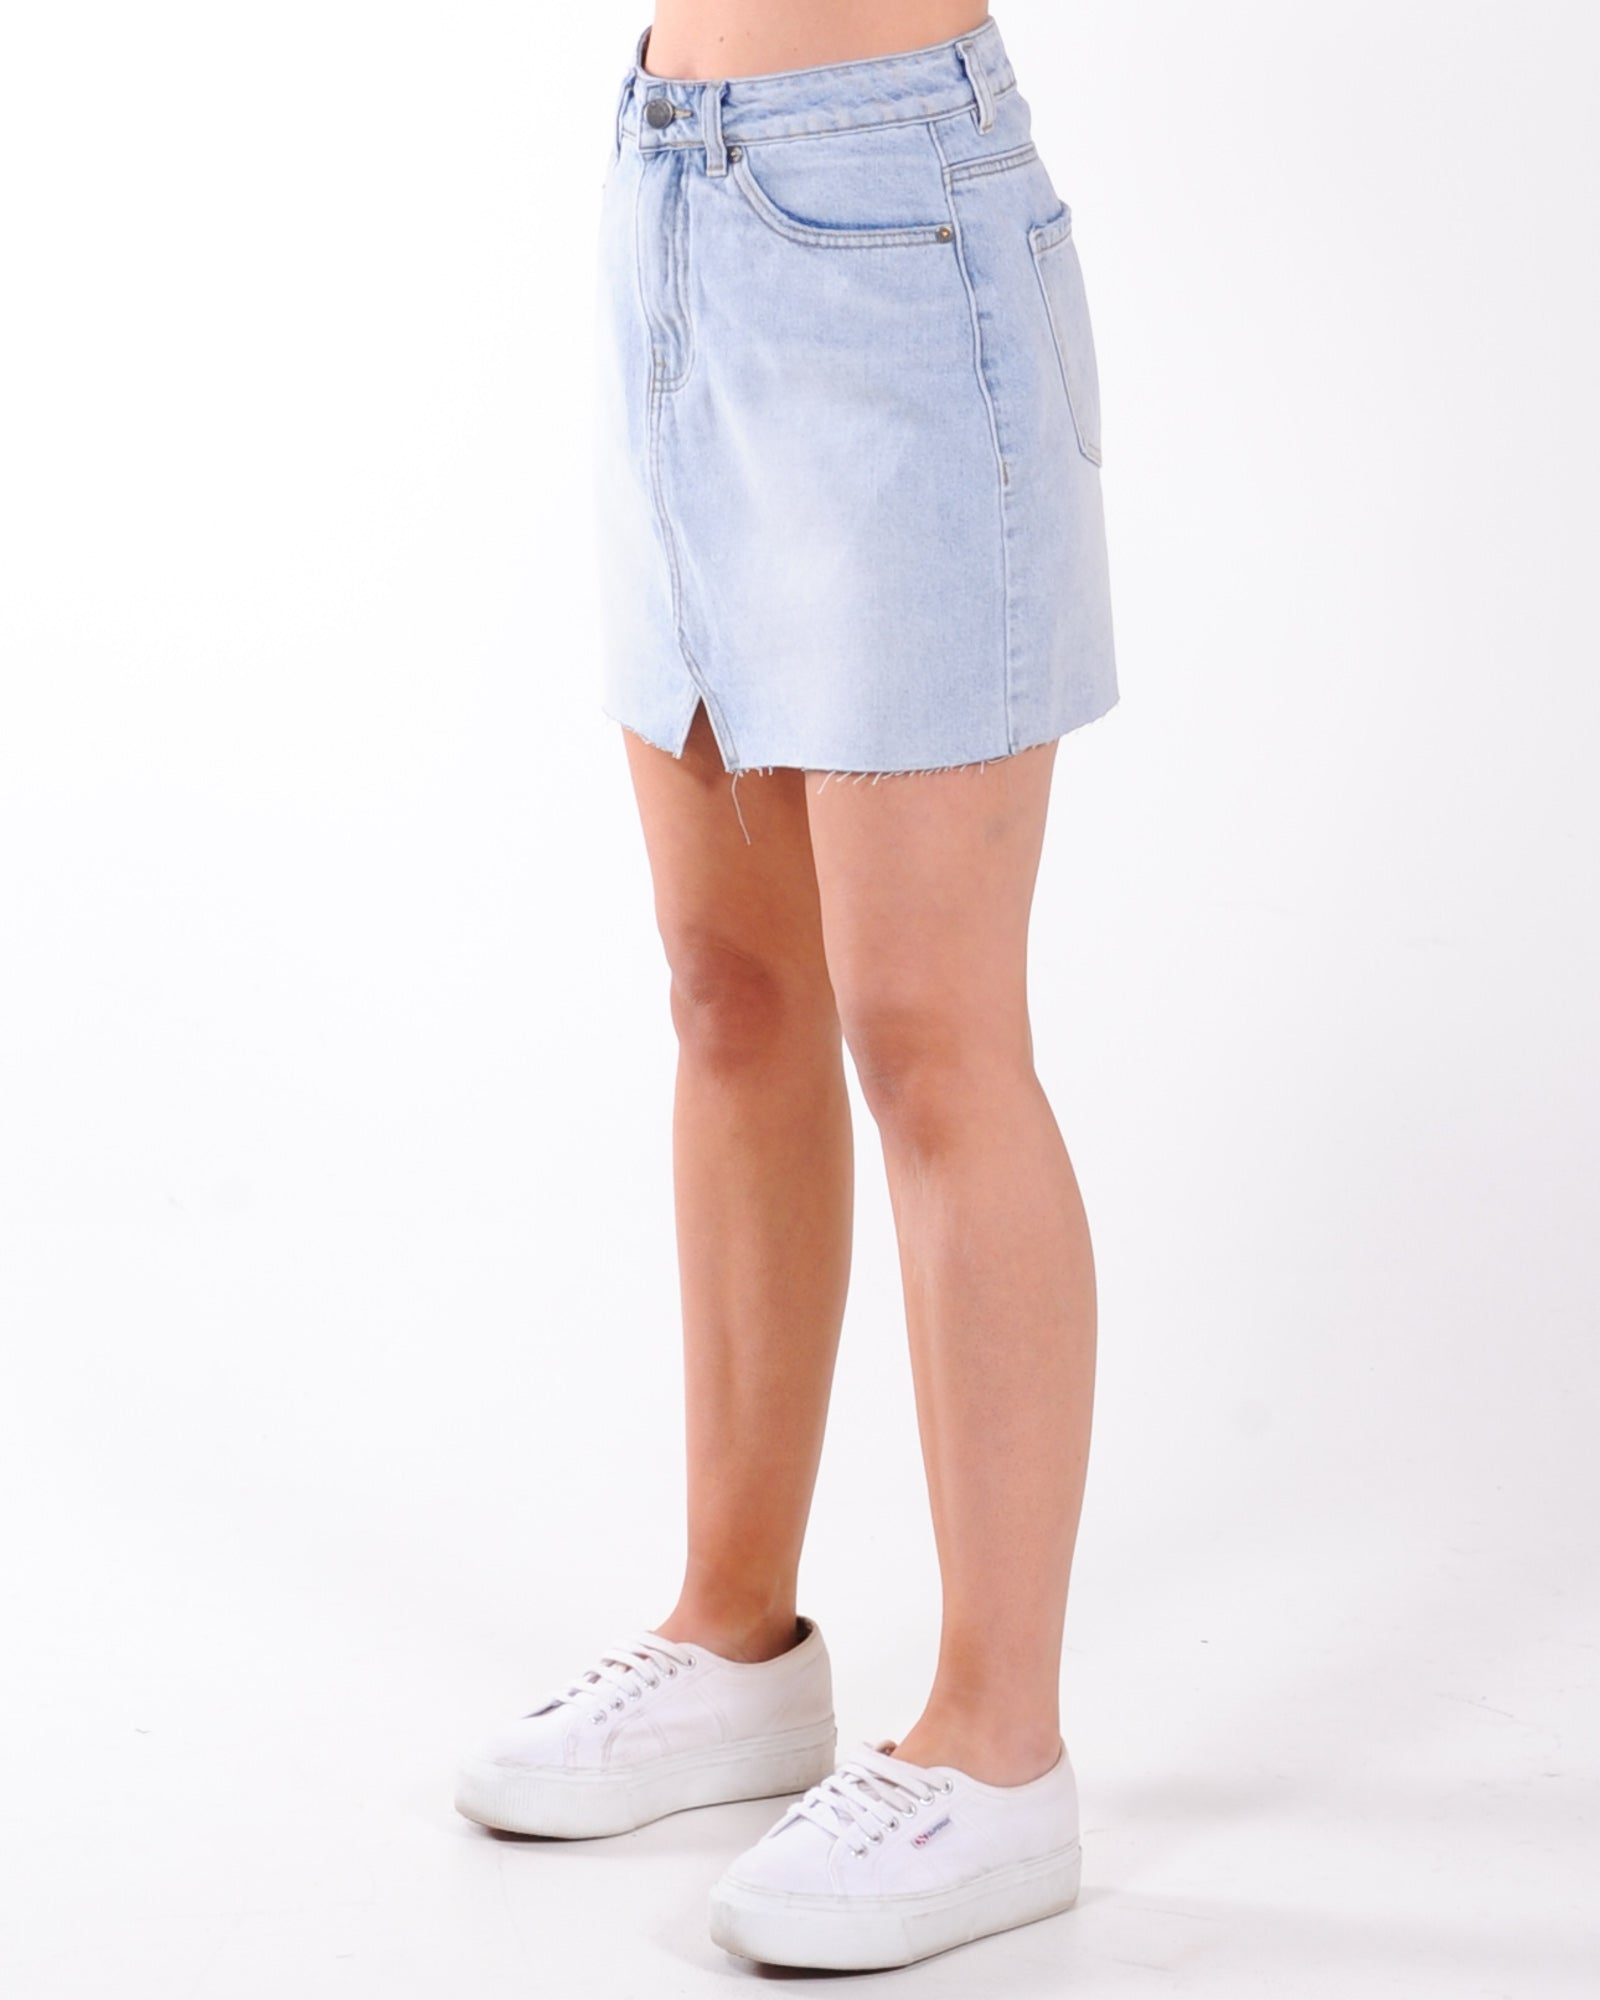 All About Eve Shea Spilt Denim Skirt - Vintage Wash